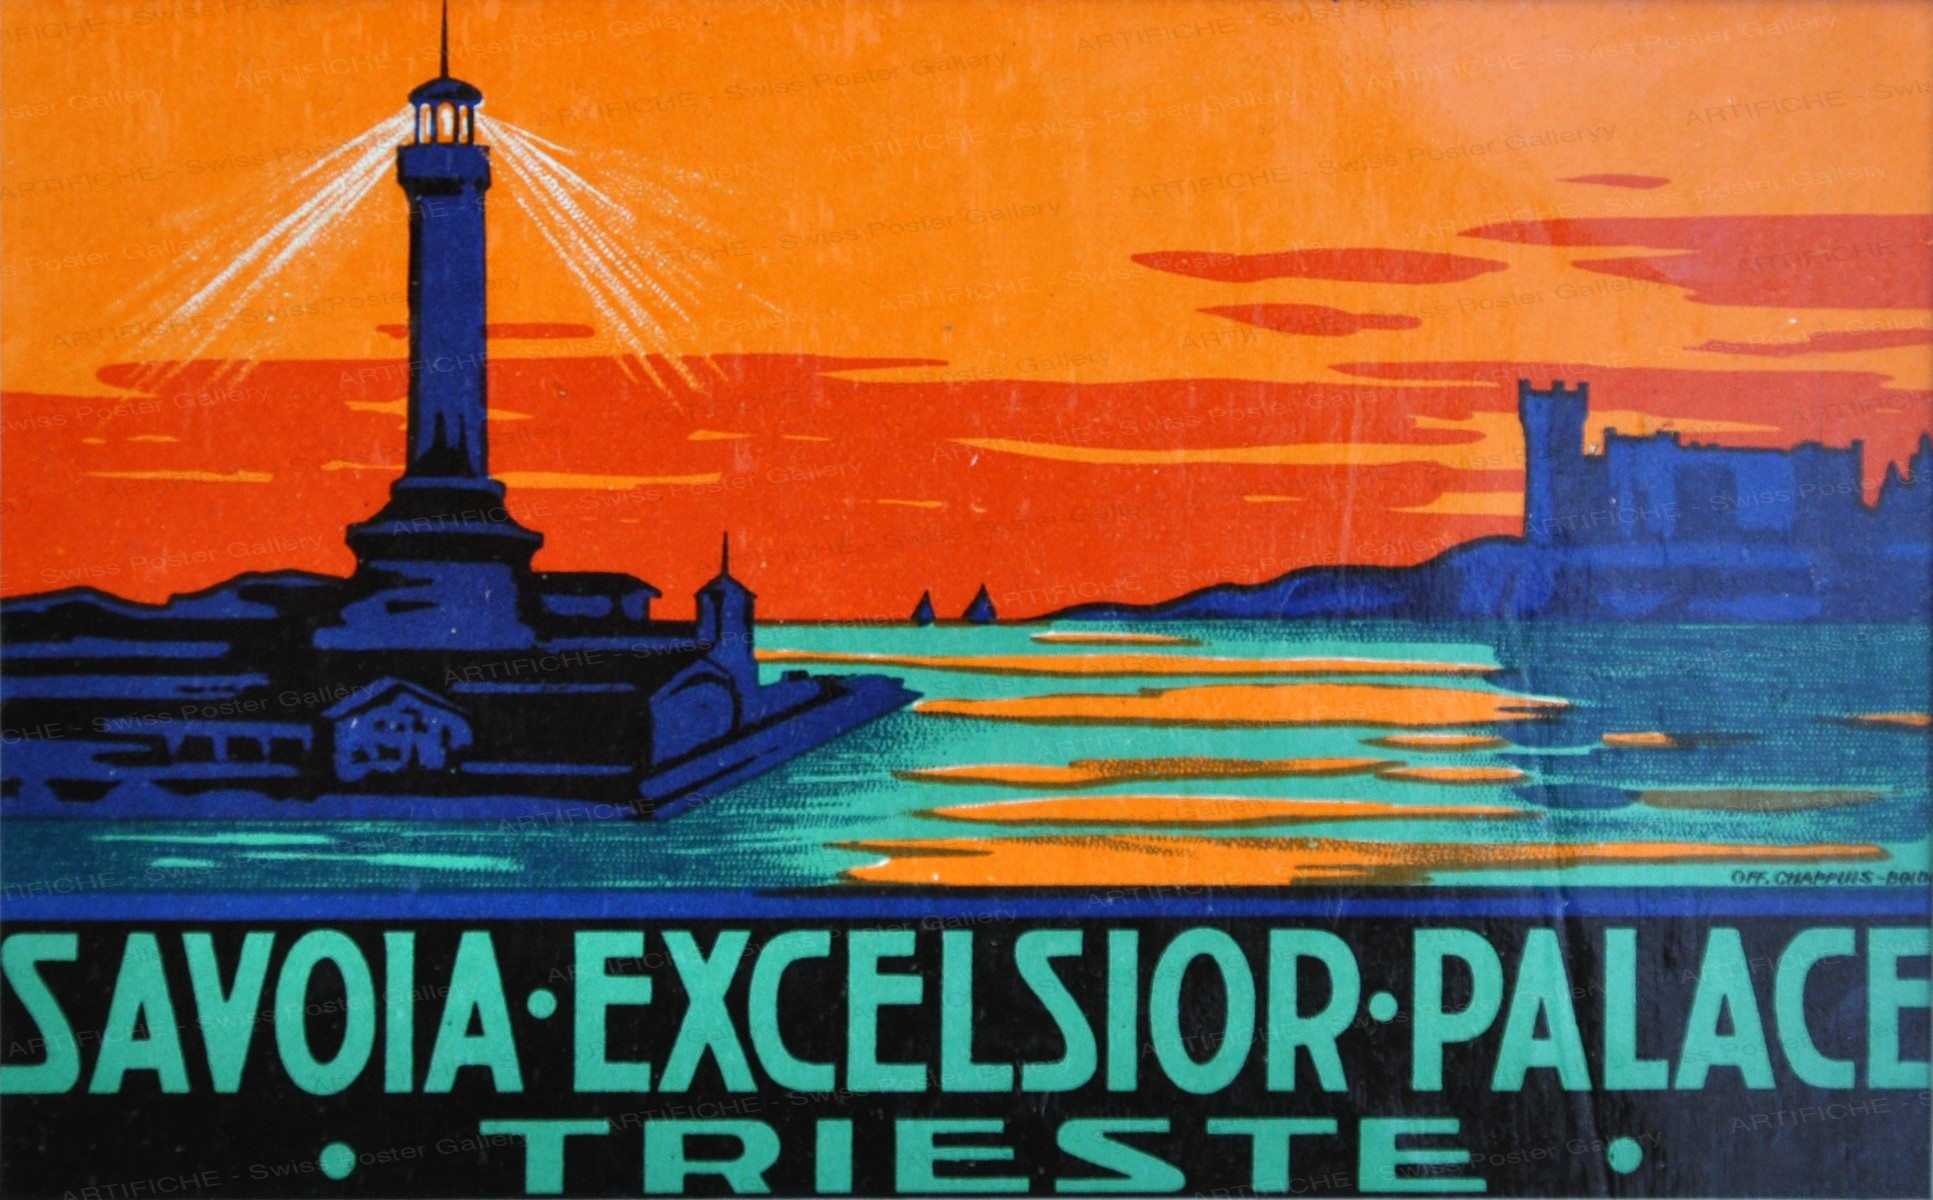 Savoia Excelsior Palace Trieste, Artist unknown